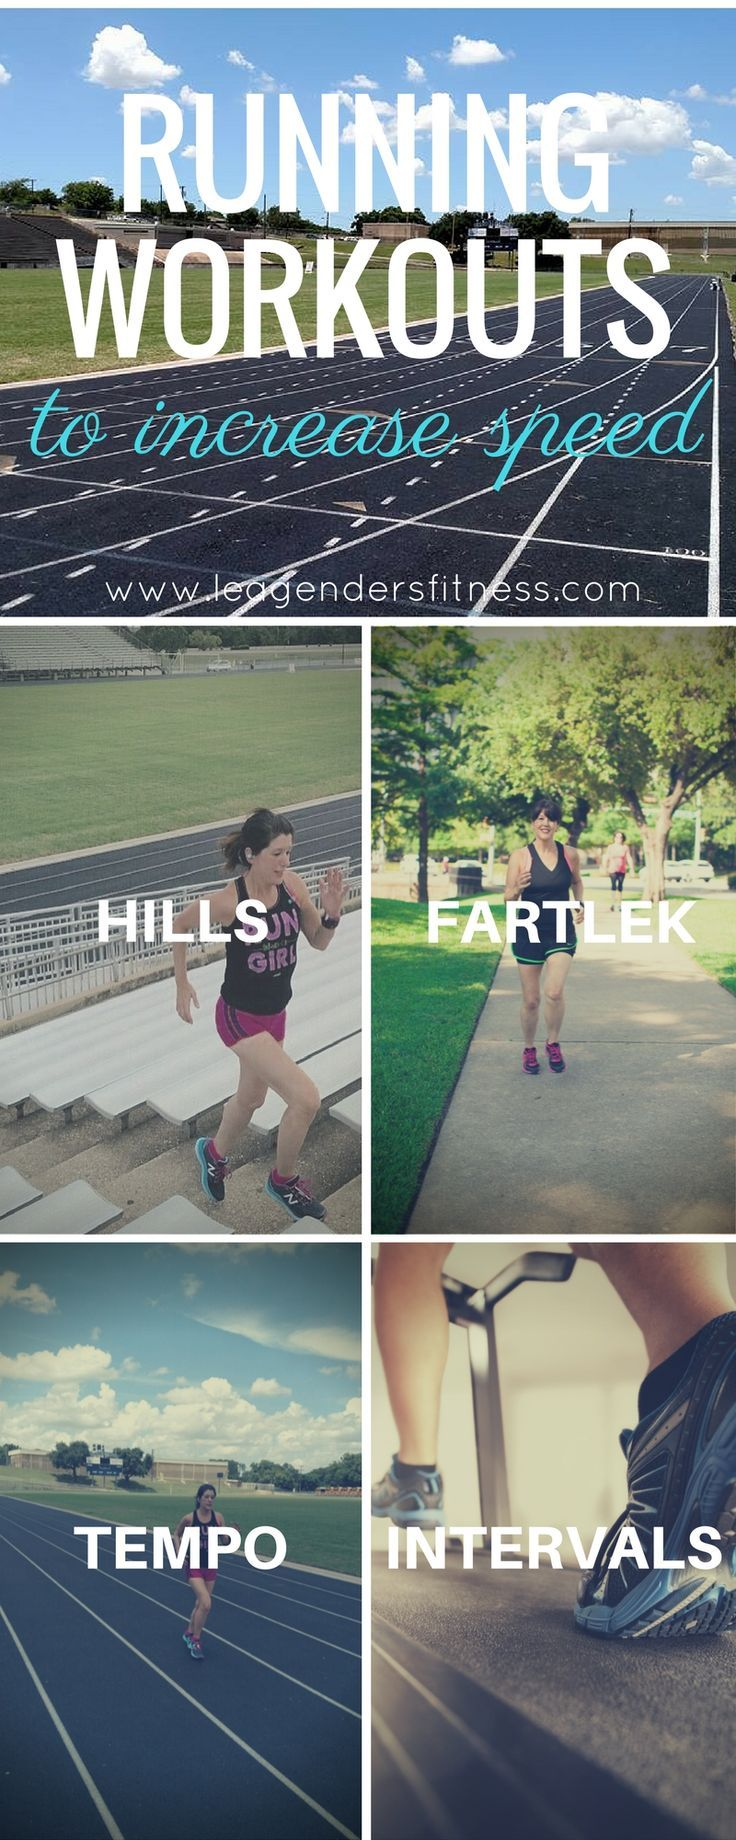 Types of Running Workouts to Increase Speed #running #workout